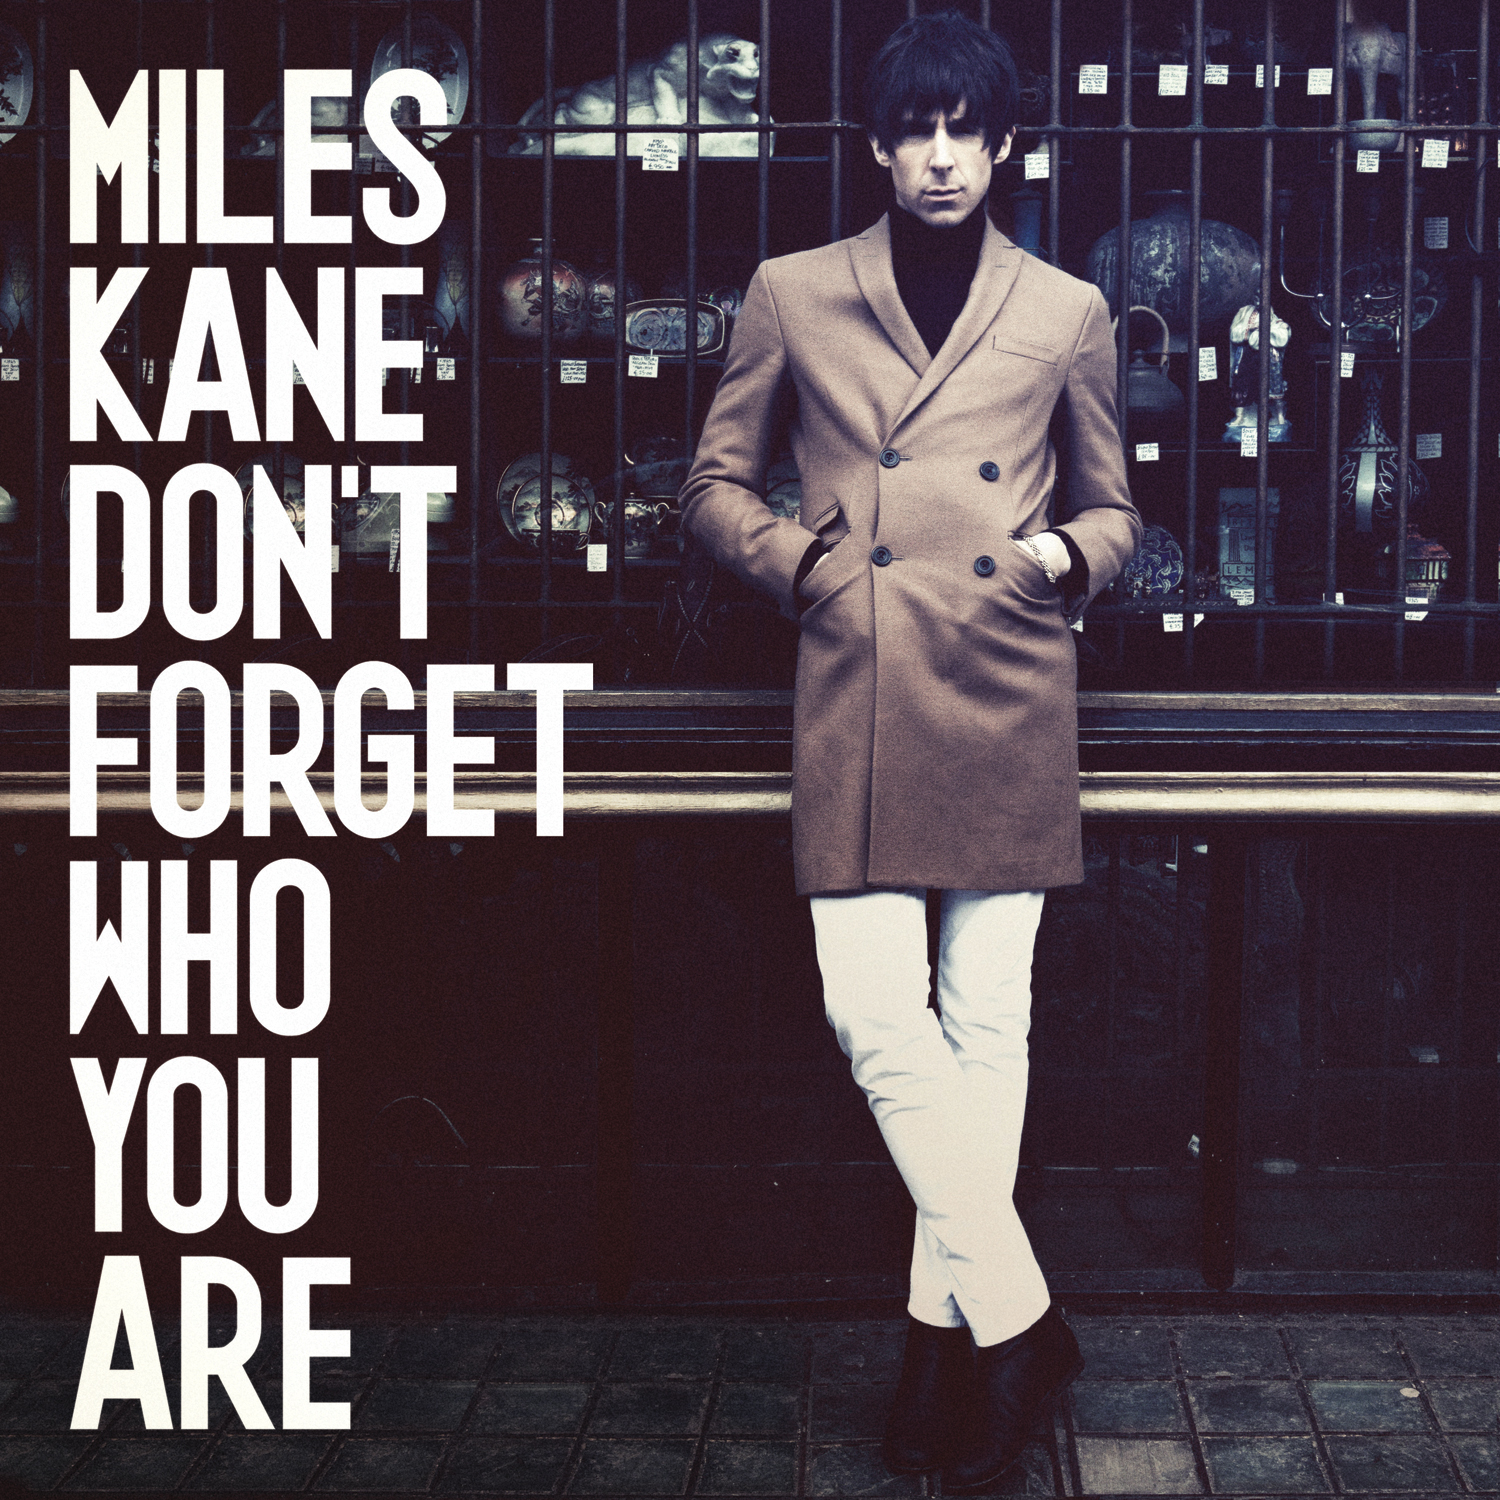 Miles Kane Don't Forget Who You Are recensione